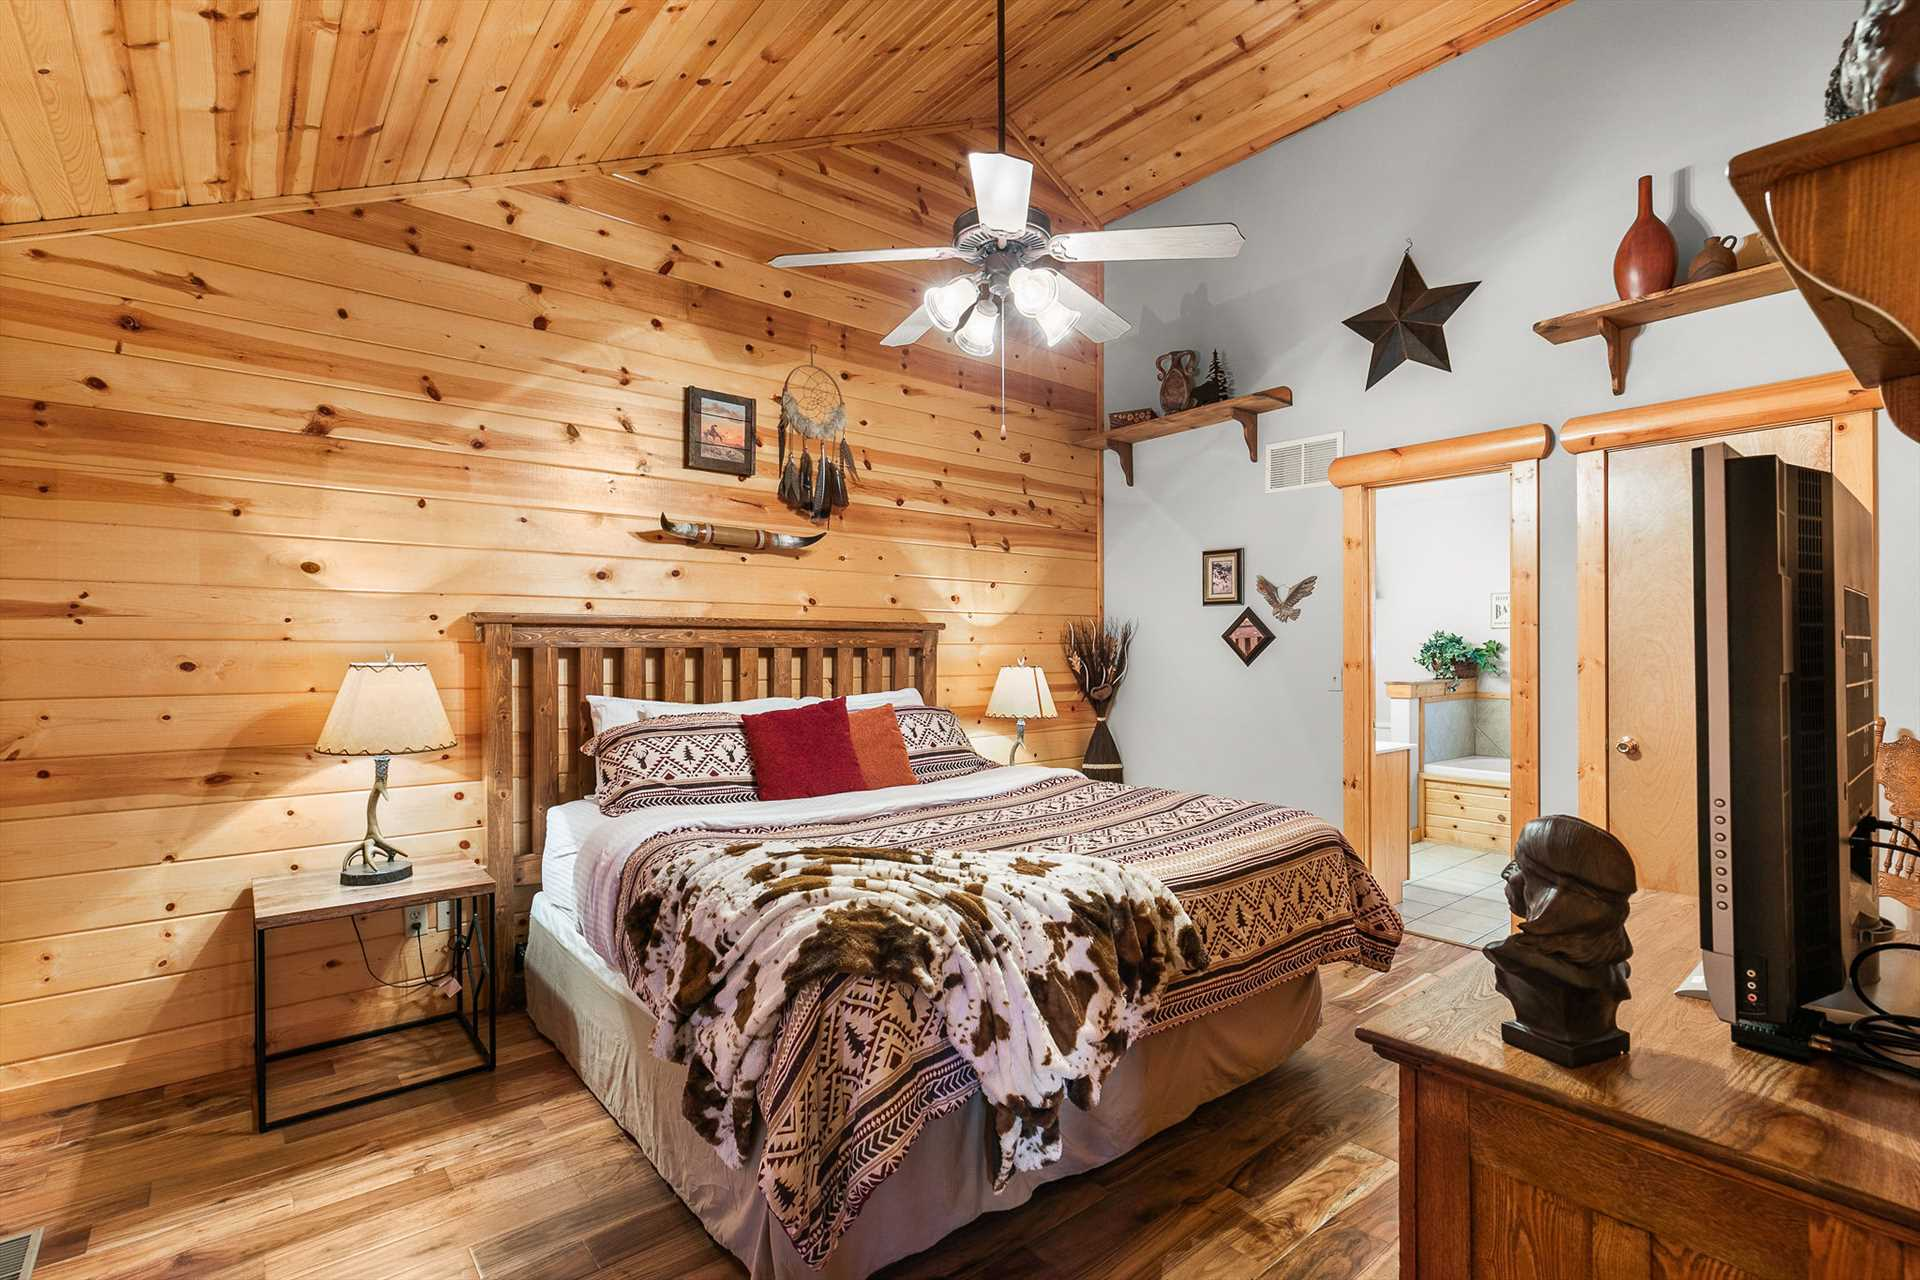 Each bedroom has its own unique and charming decor.